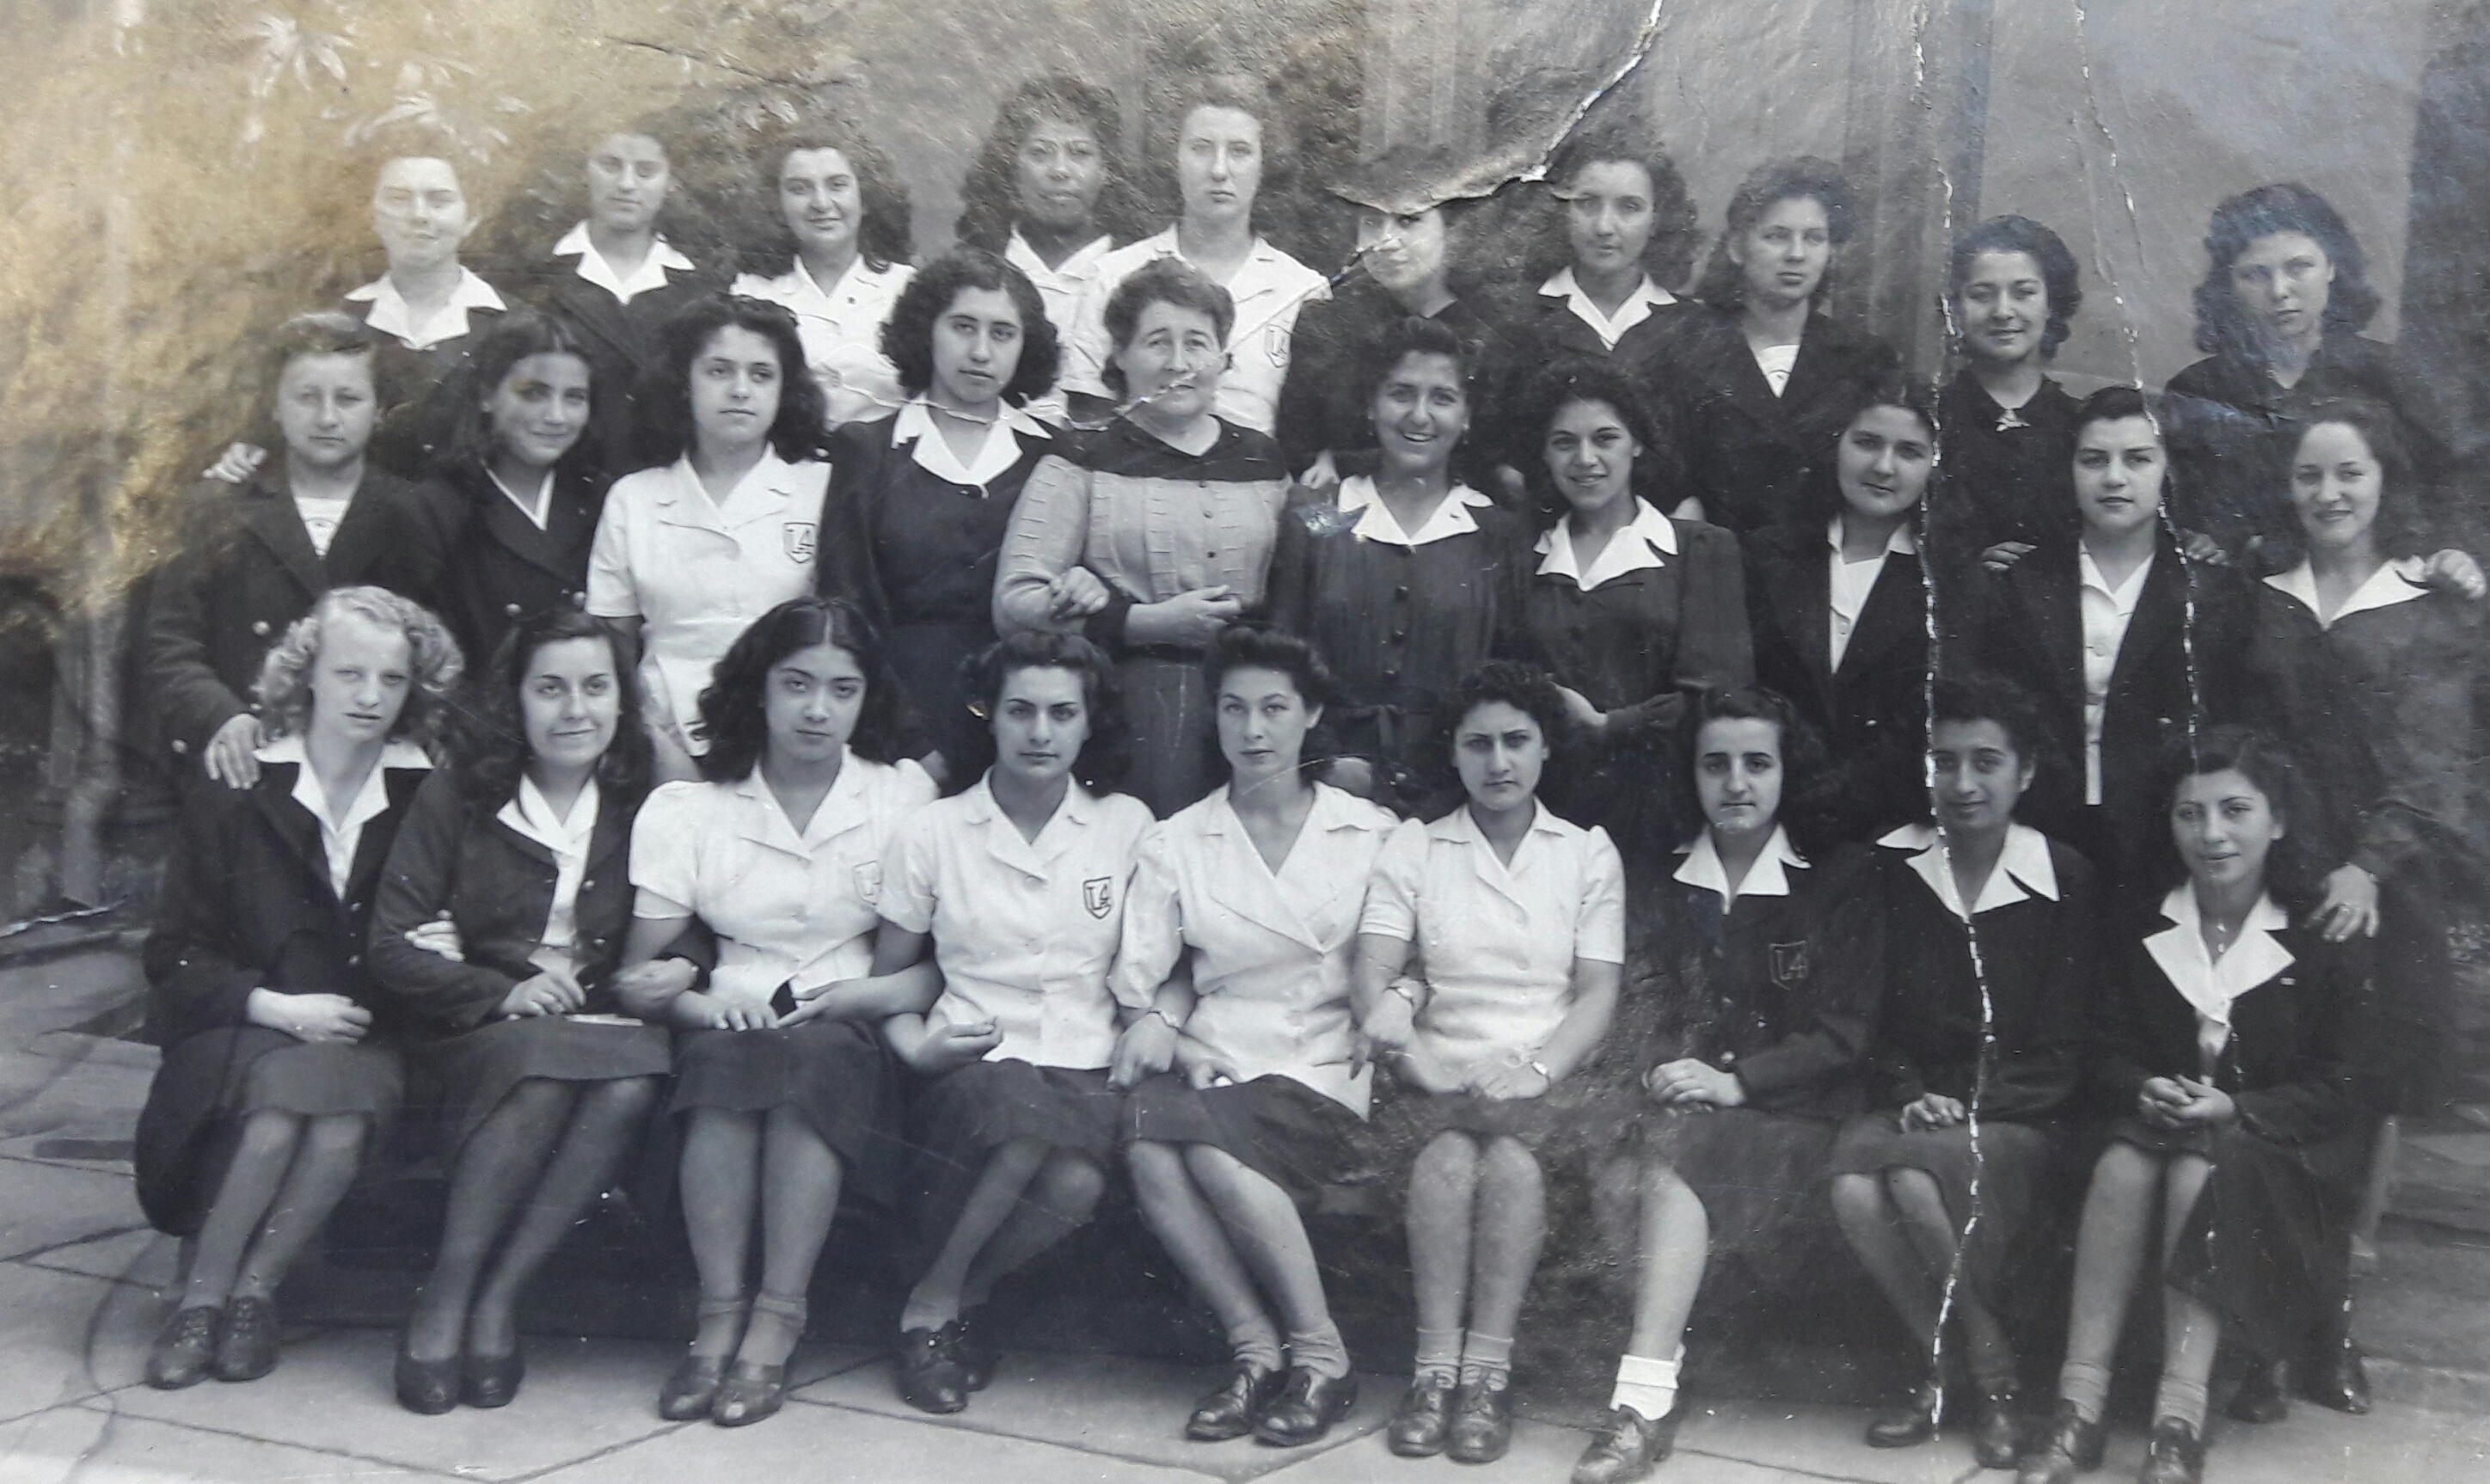 Enterreno - Fotos históricas de chile - fotos antiguas de Chile - Liceo 4, 1942